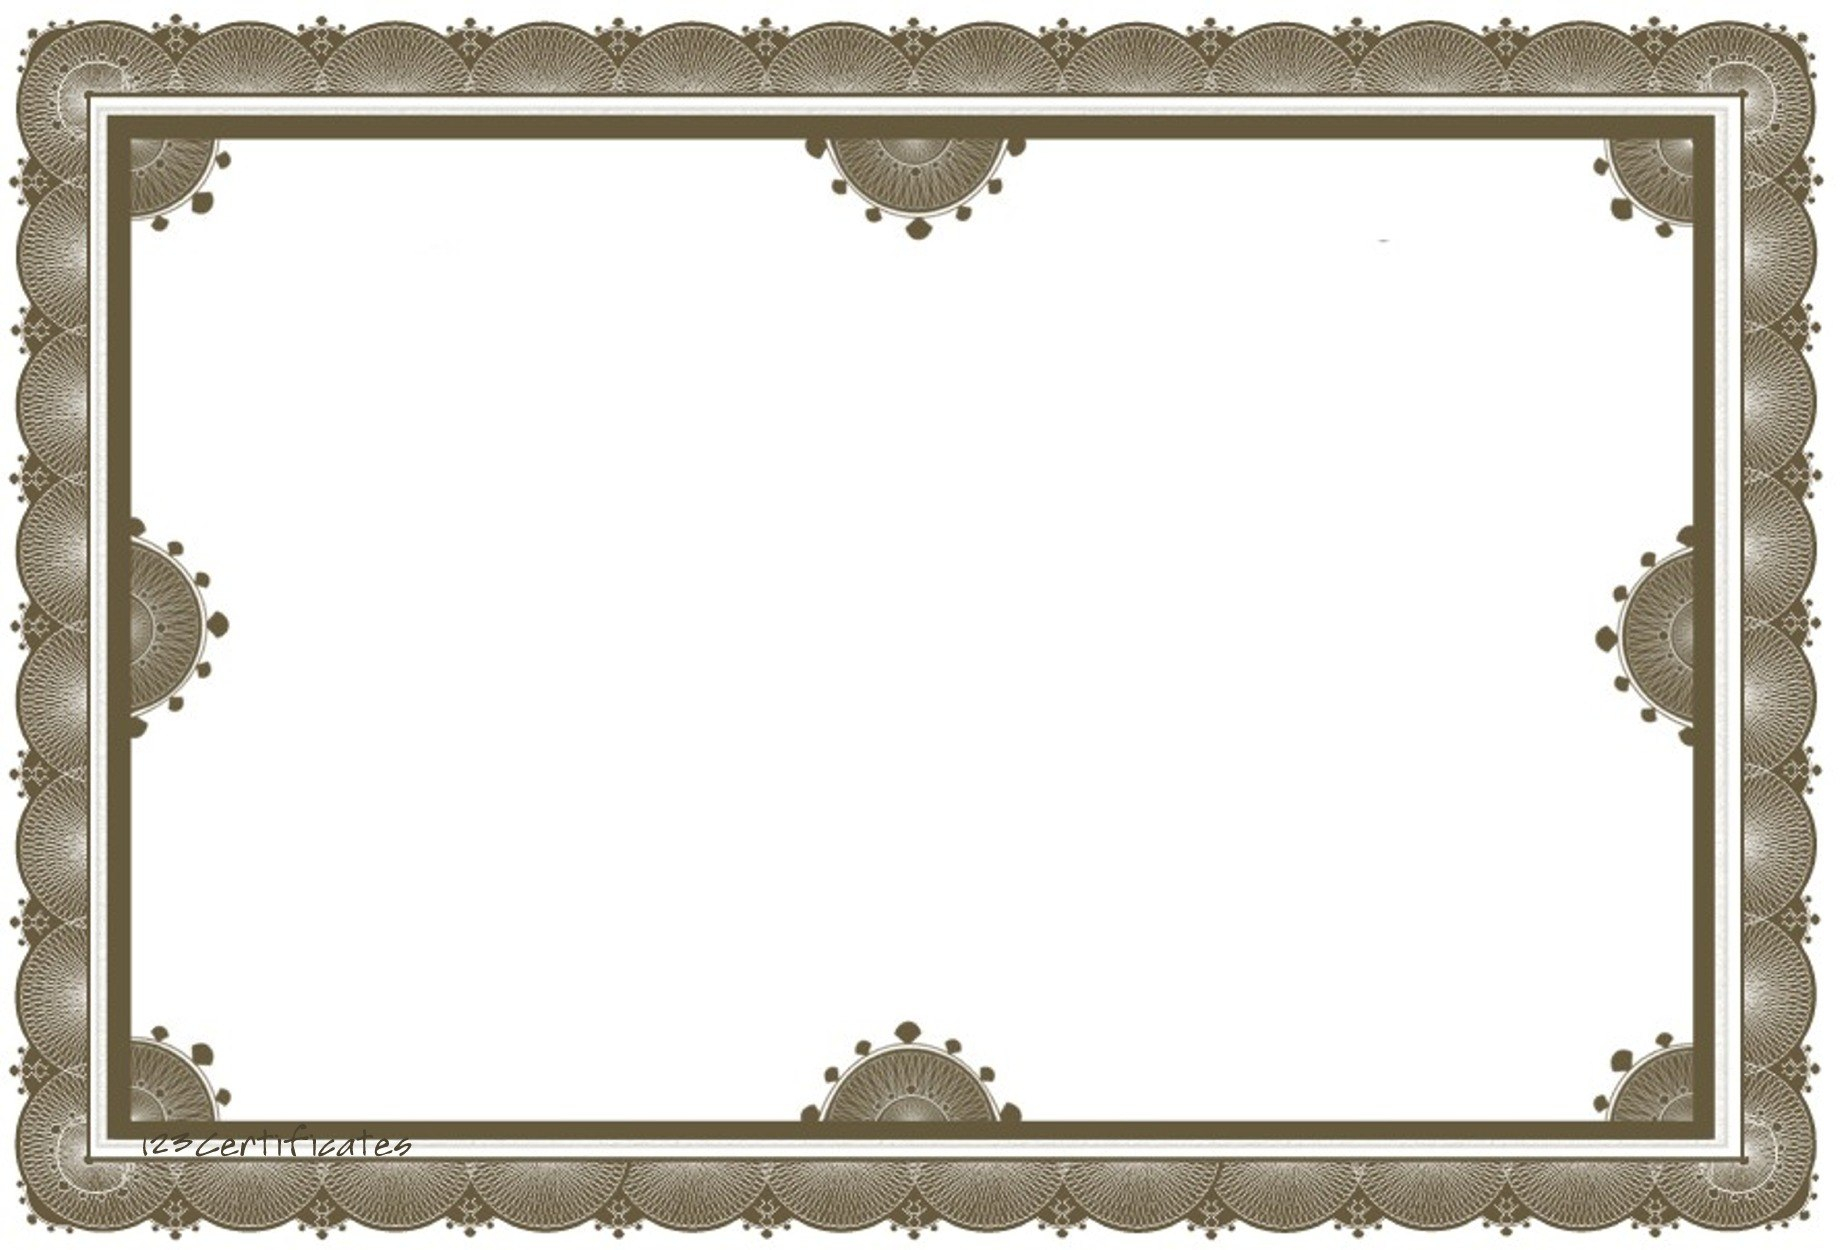 Free Certificate Borders To Download Pertaining To Award Certificate Border Template